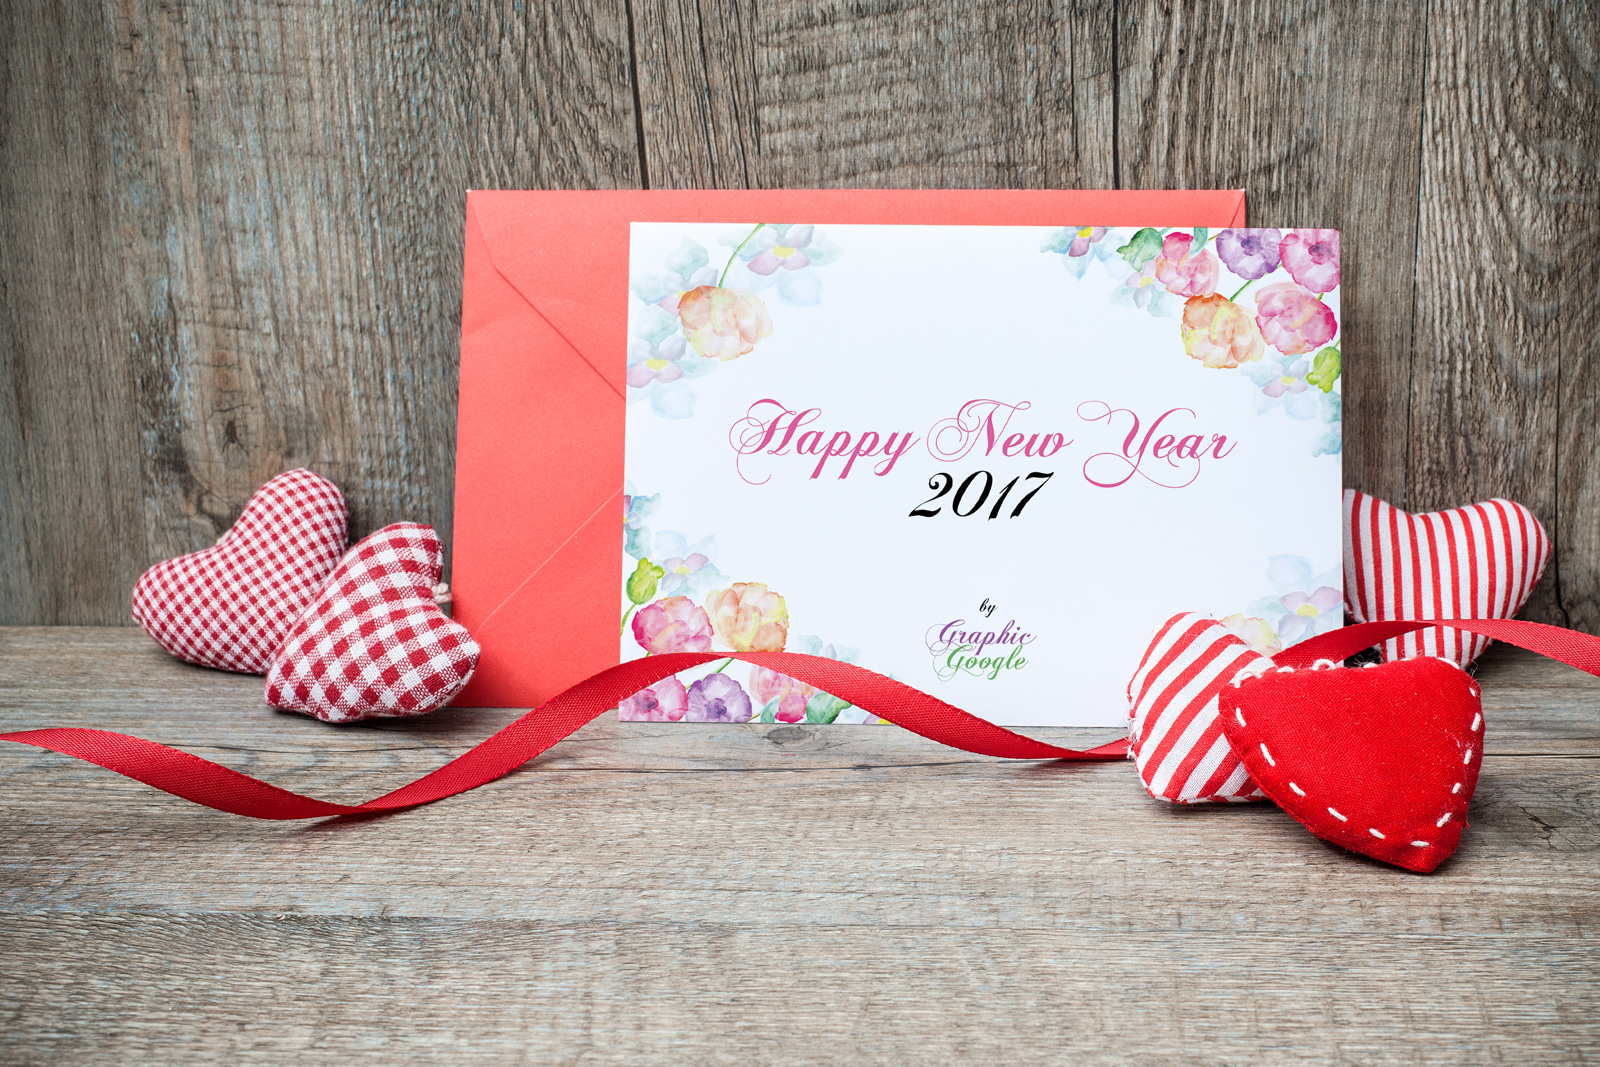 free new year greeting card mock up psd